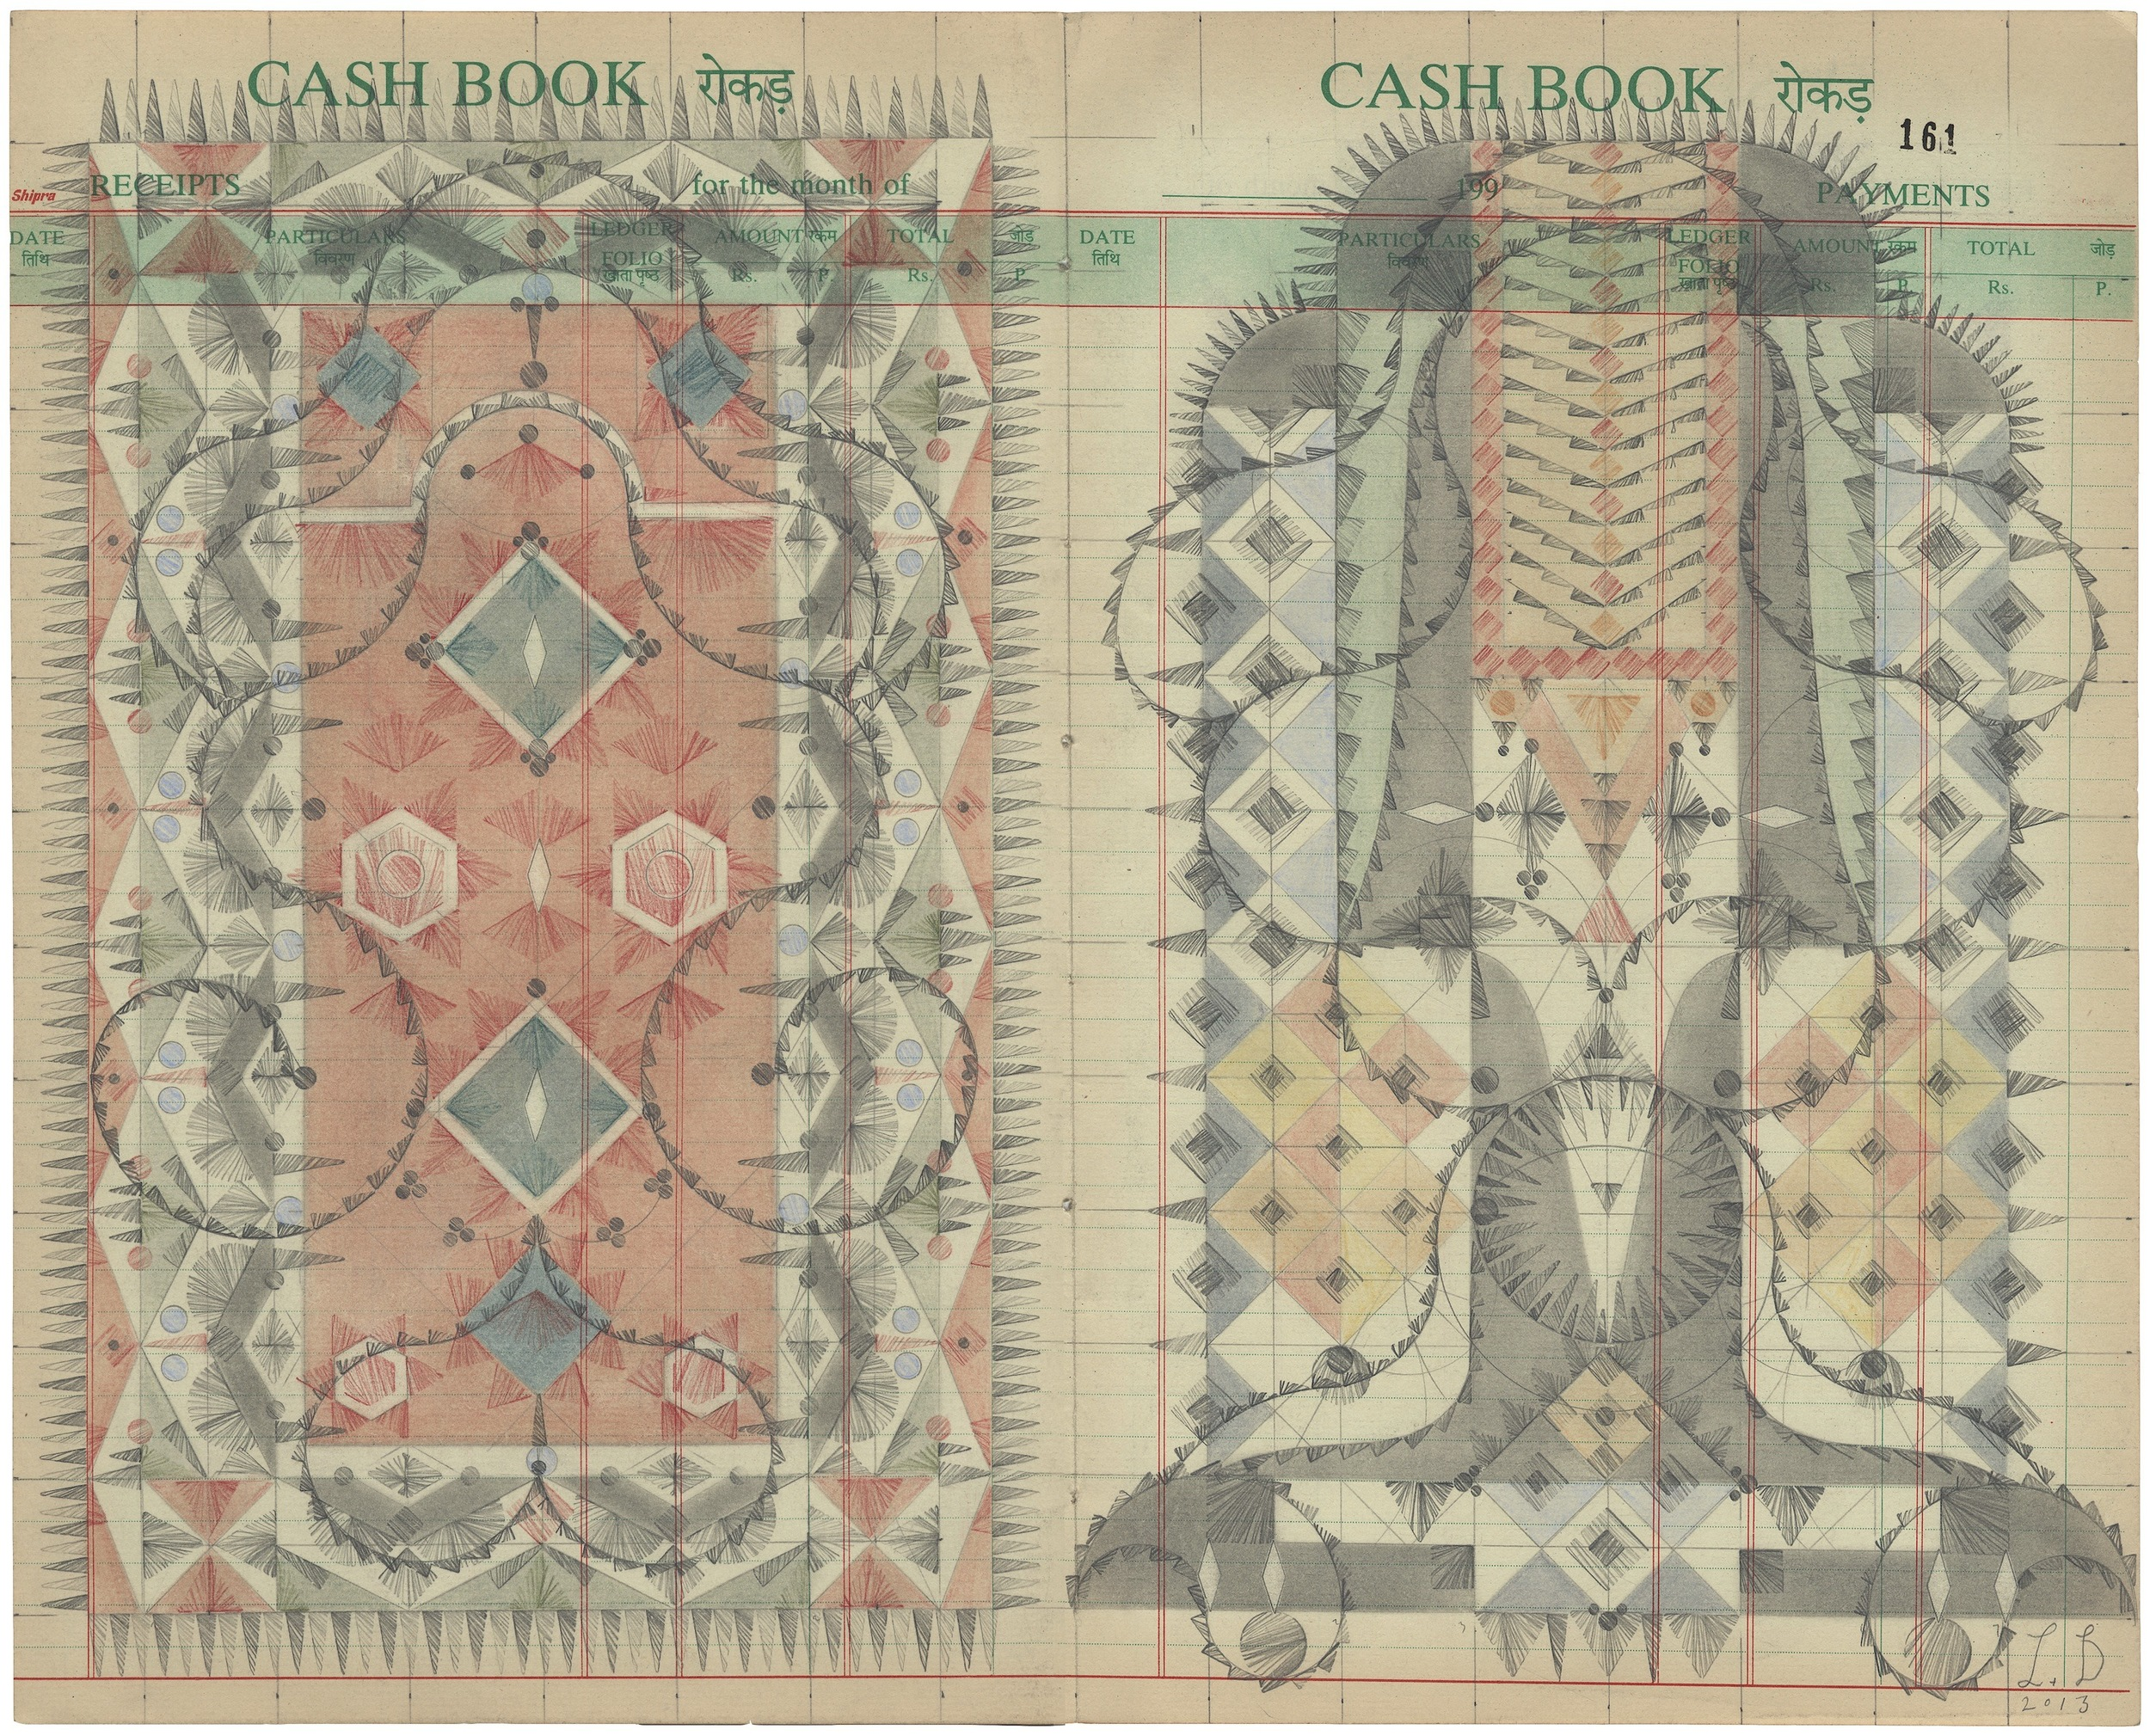 Gamelan Cashbook, Colored Pencil and Graphite on Antique Ledger Book Pages. 13.75 x 16.75 inches